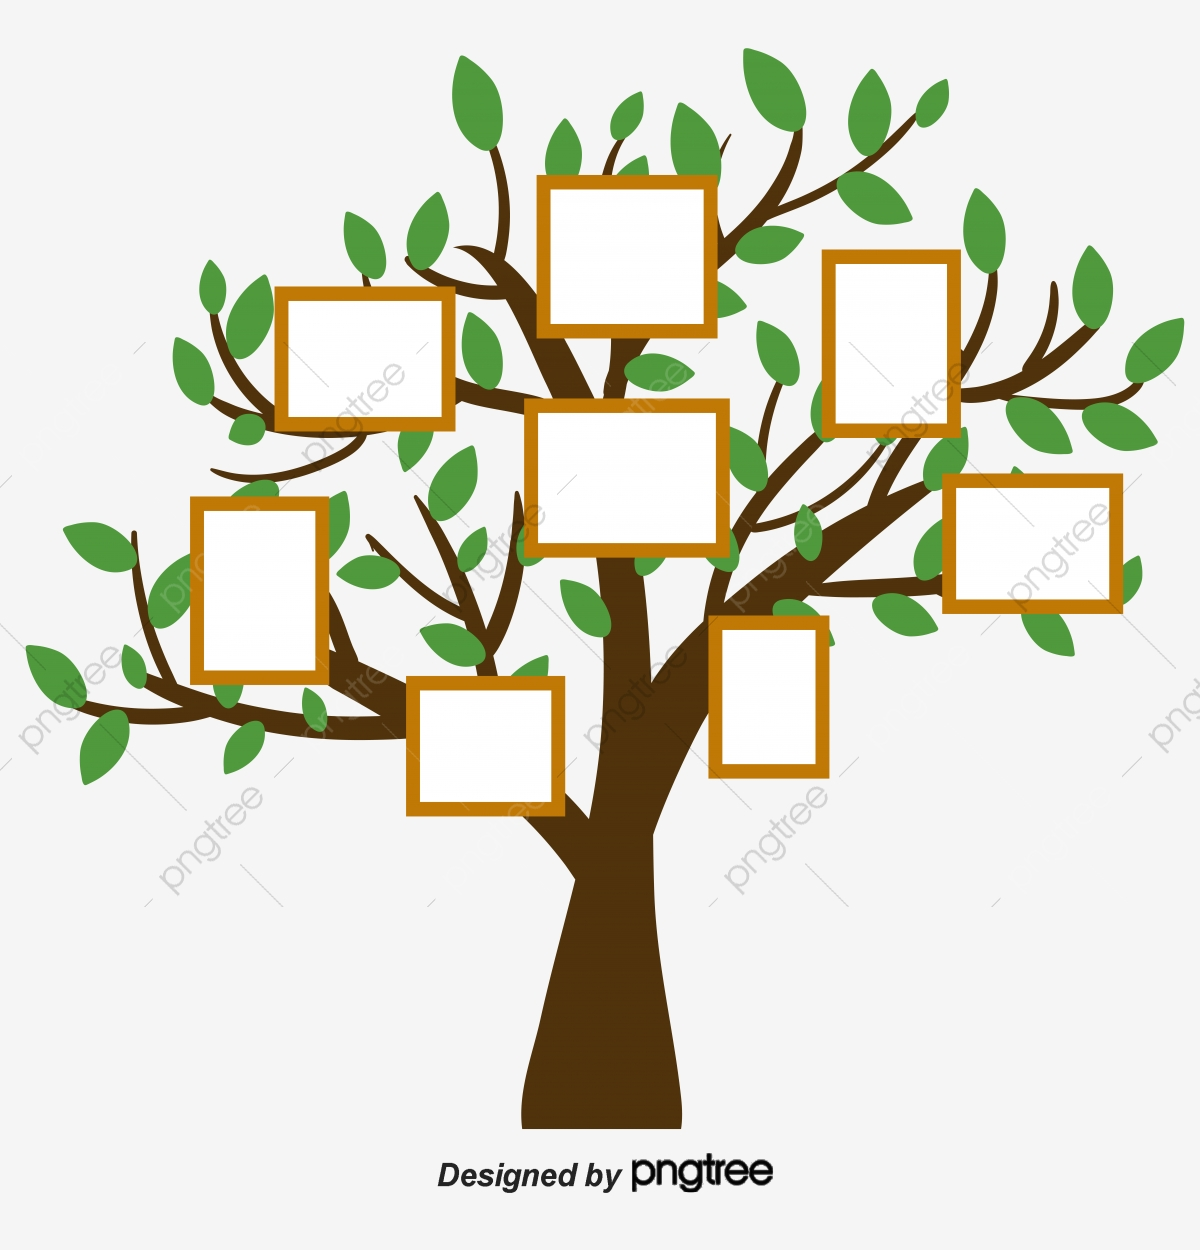 Simple Hand Painted Creative Family Tree, Relationship, Big Tree.